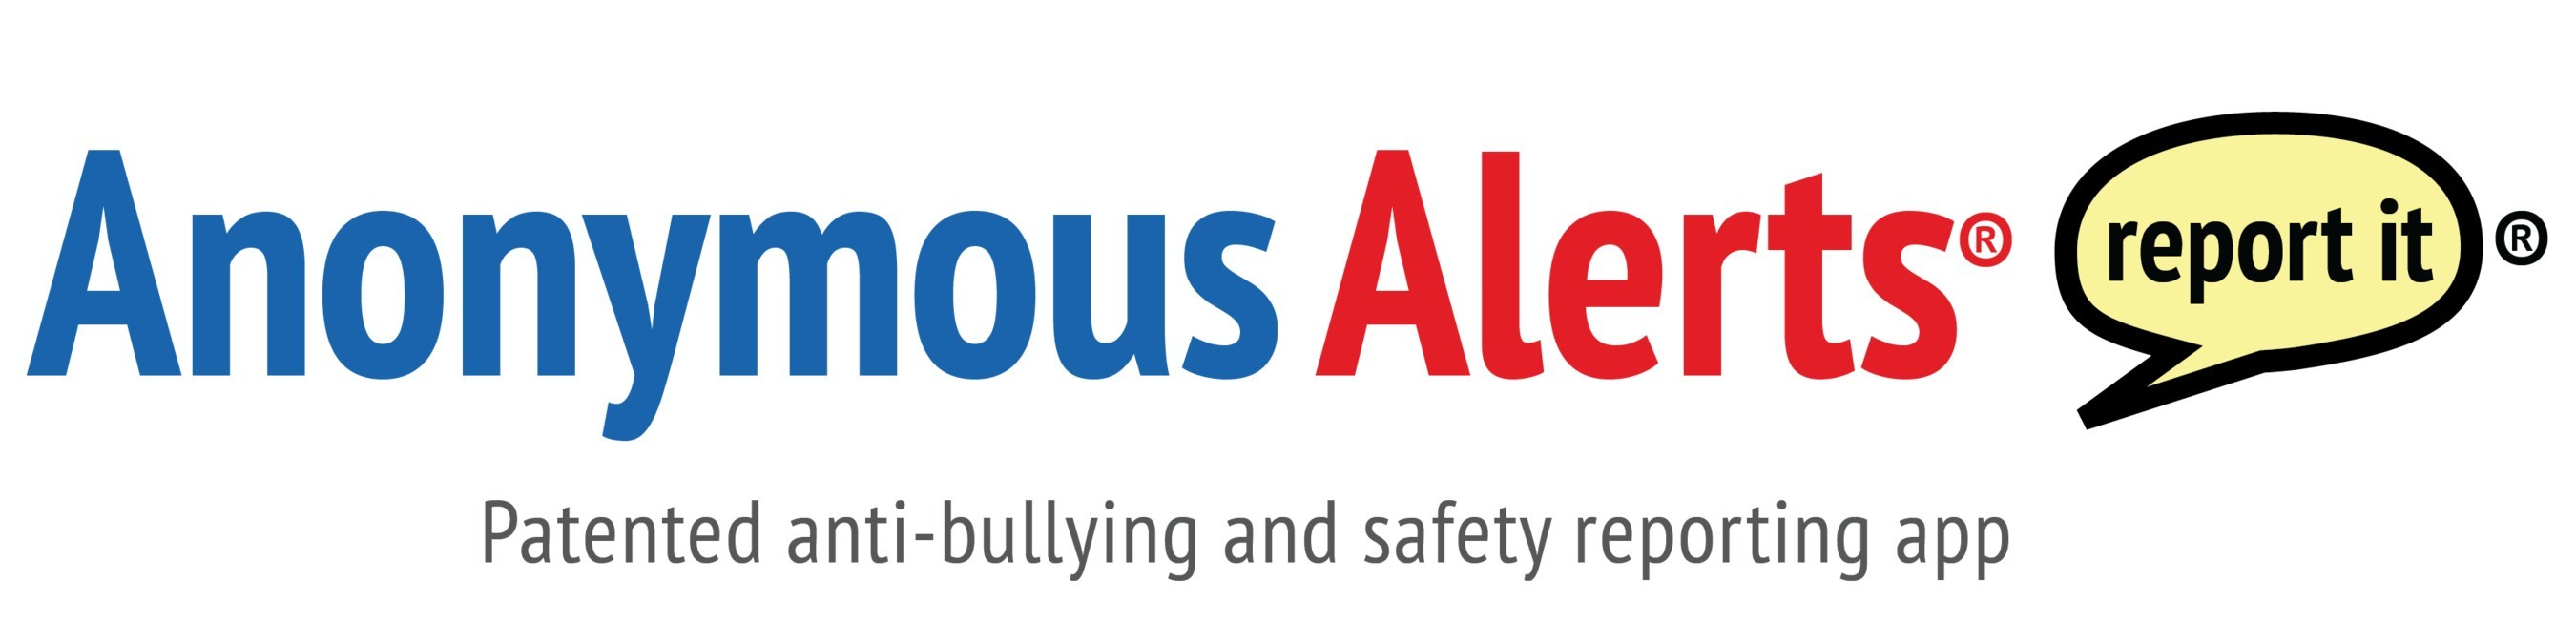 Anonymous Alerts® and PNW BOCES Partner to Eliminate Bullying, Drugs, and Safety Issues in All New